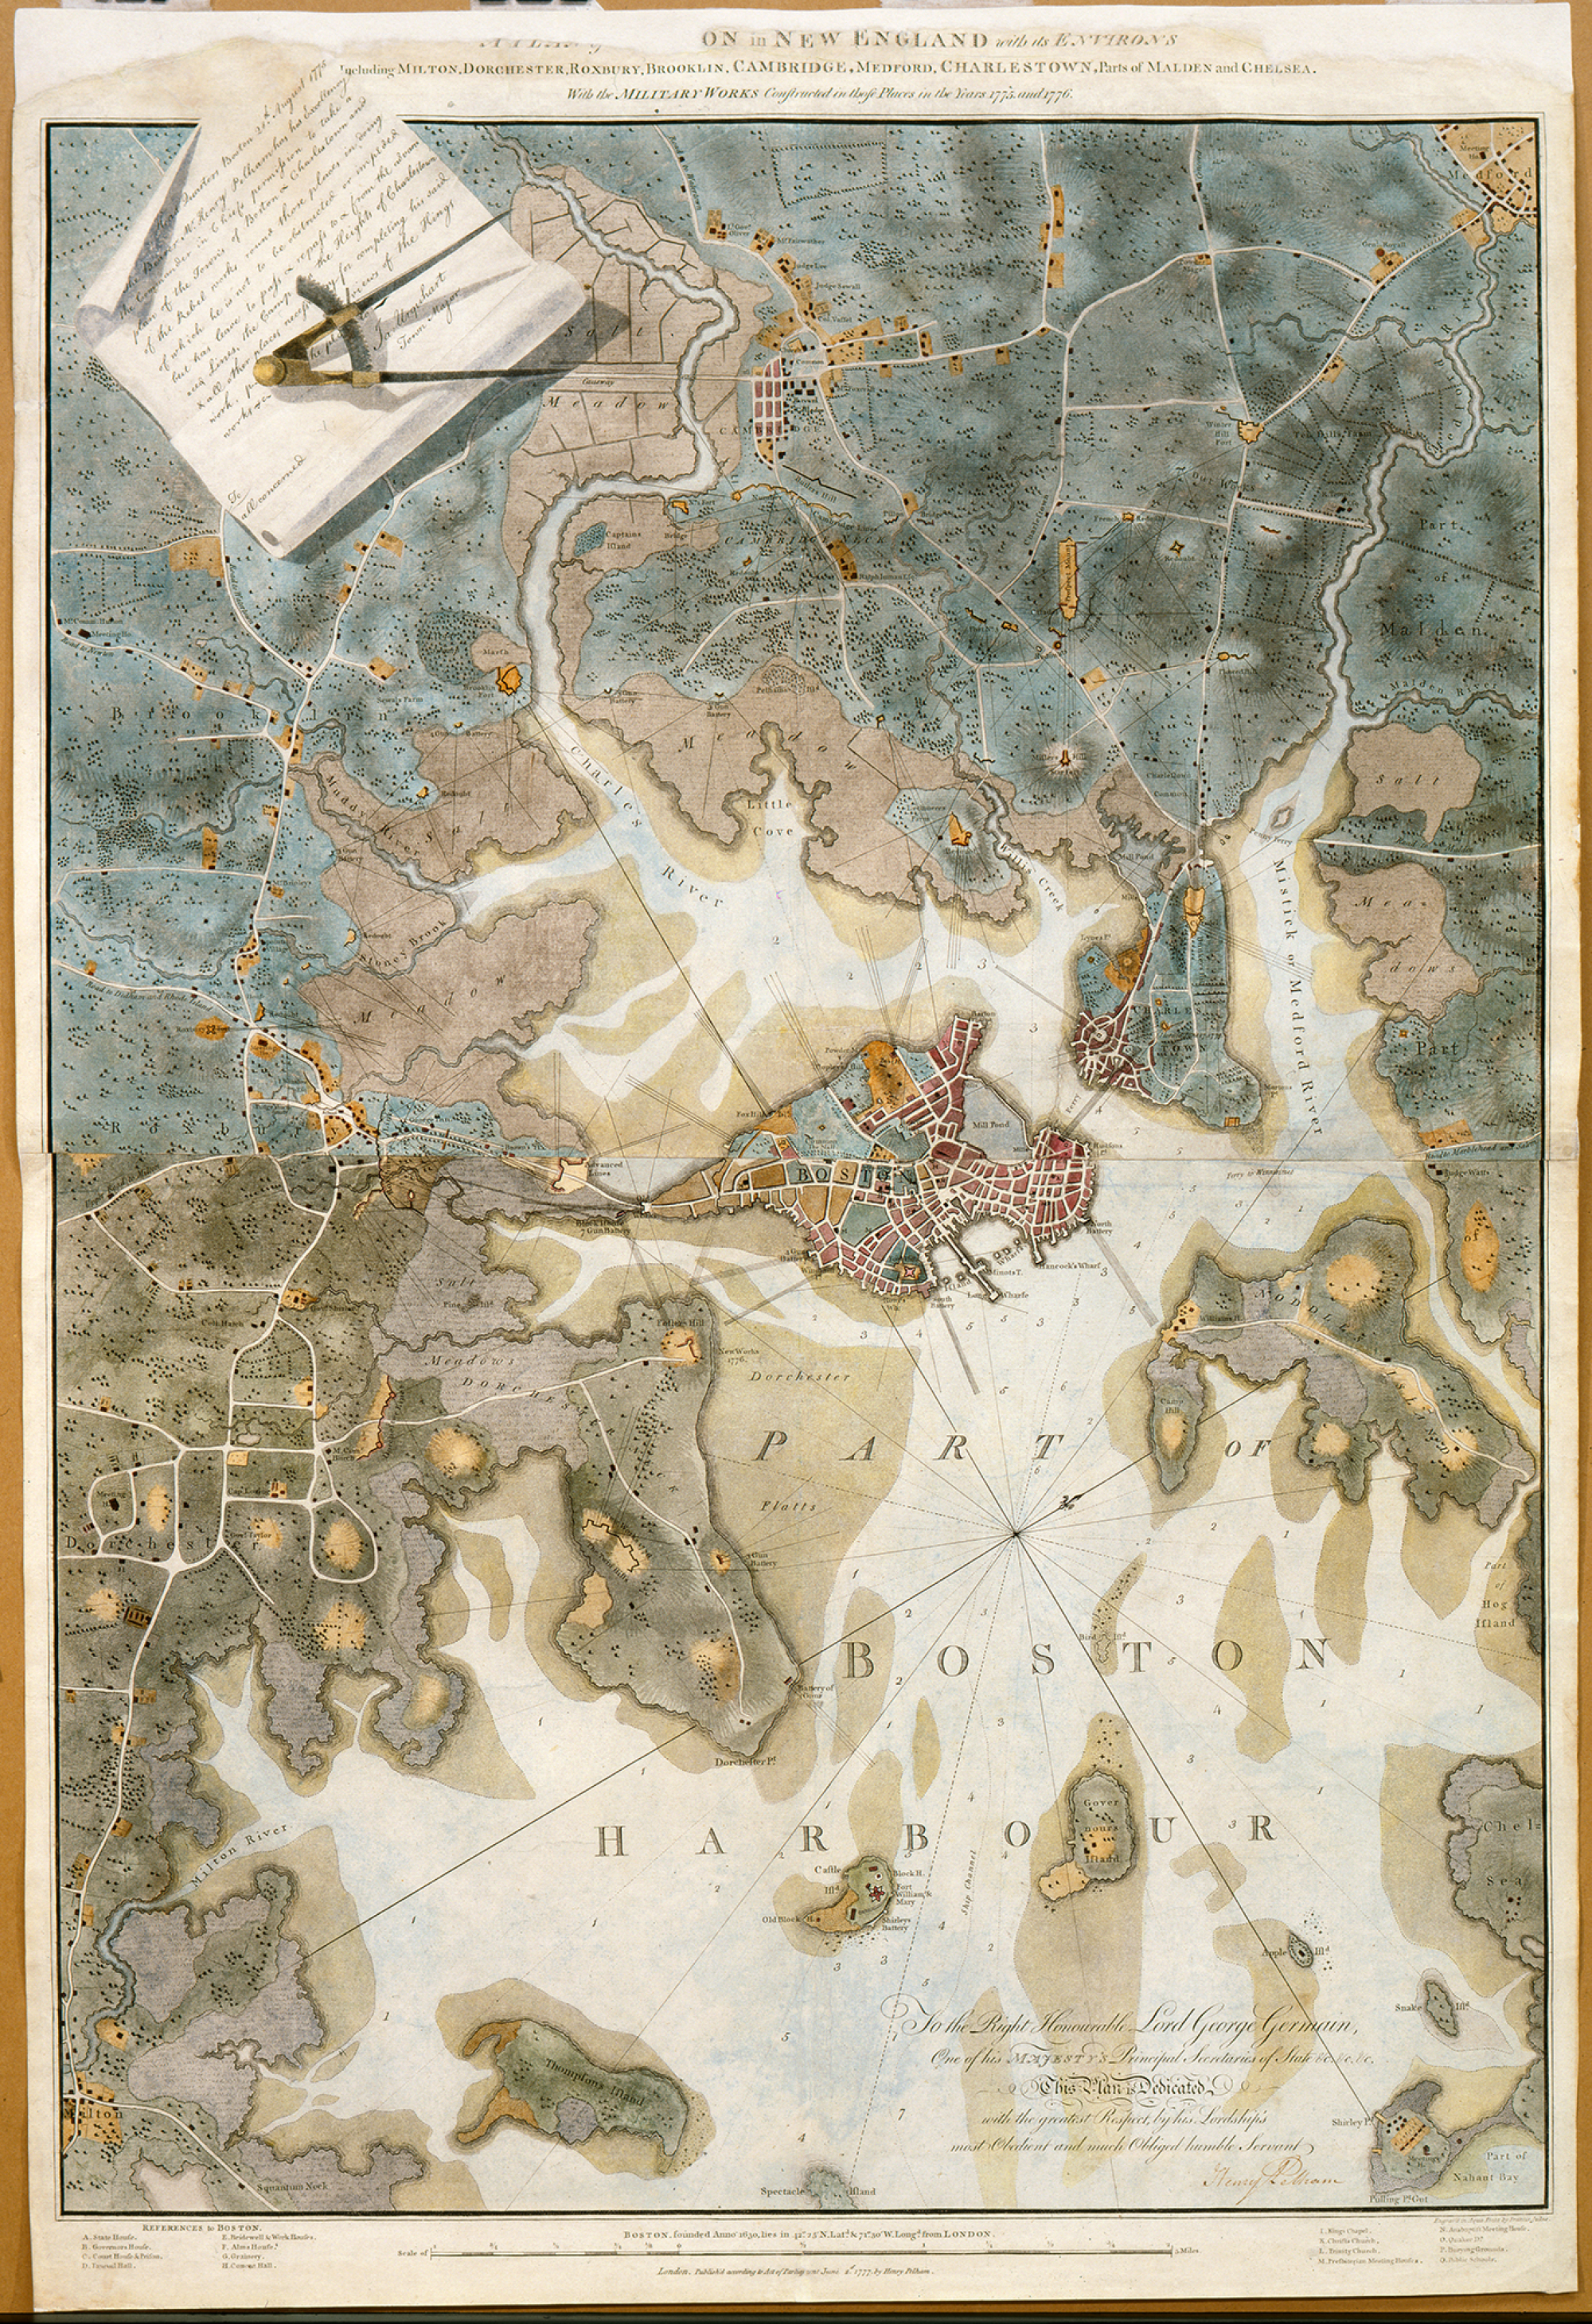 A plan of Boston in New England with its environs · George ... Map Of New England on map of long island 1776, map of north america 1776, map of nantucket 1776, map of manhattan 1776, map of africa 1776, map of germany 1776, map of great britain 1776, map of american colonies 1776, map of mexico 1776, map of united states 1776, map of texas 1776, map of dorchester heights 1776, map of california 1776, map of massachusetts 1776, map of philadelphia 1776, map of alaska 1776, map of canada 1776, map of russia 1776, map of trenton 1776, map of virginia 1776,